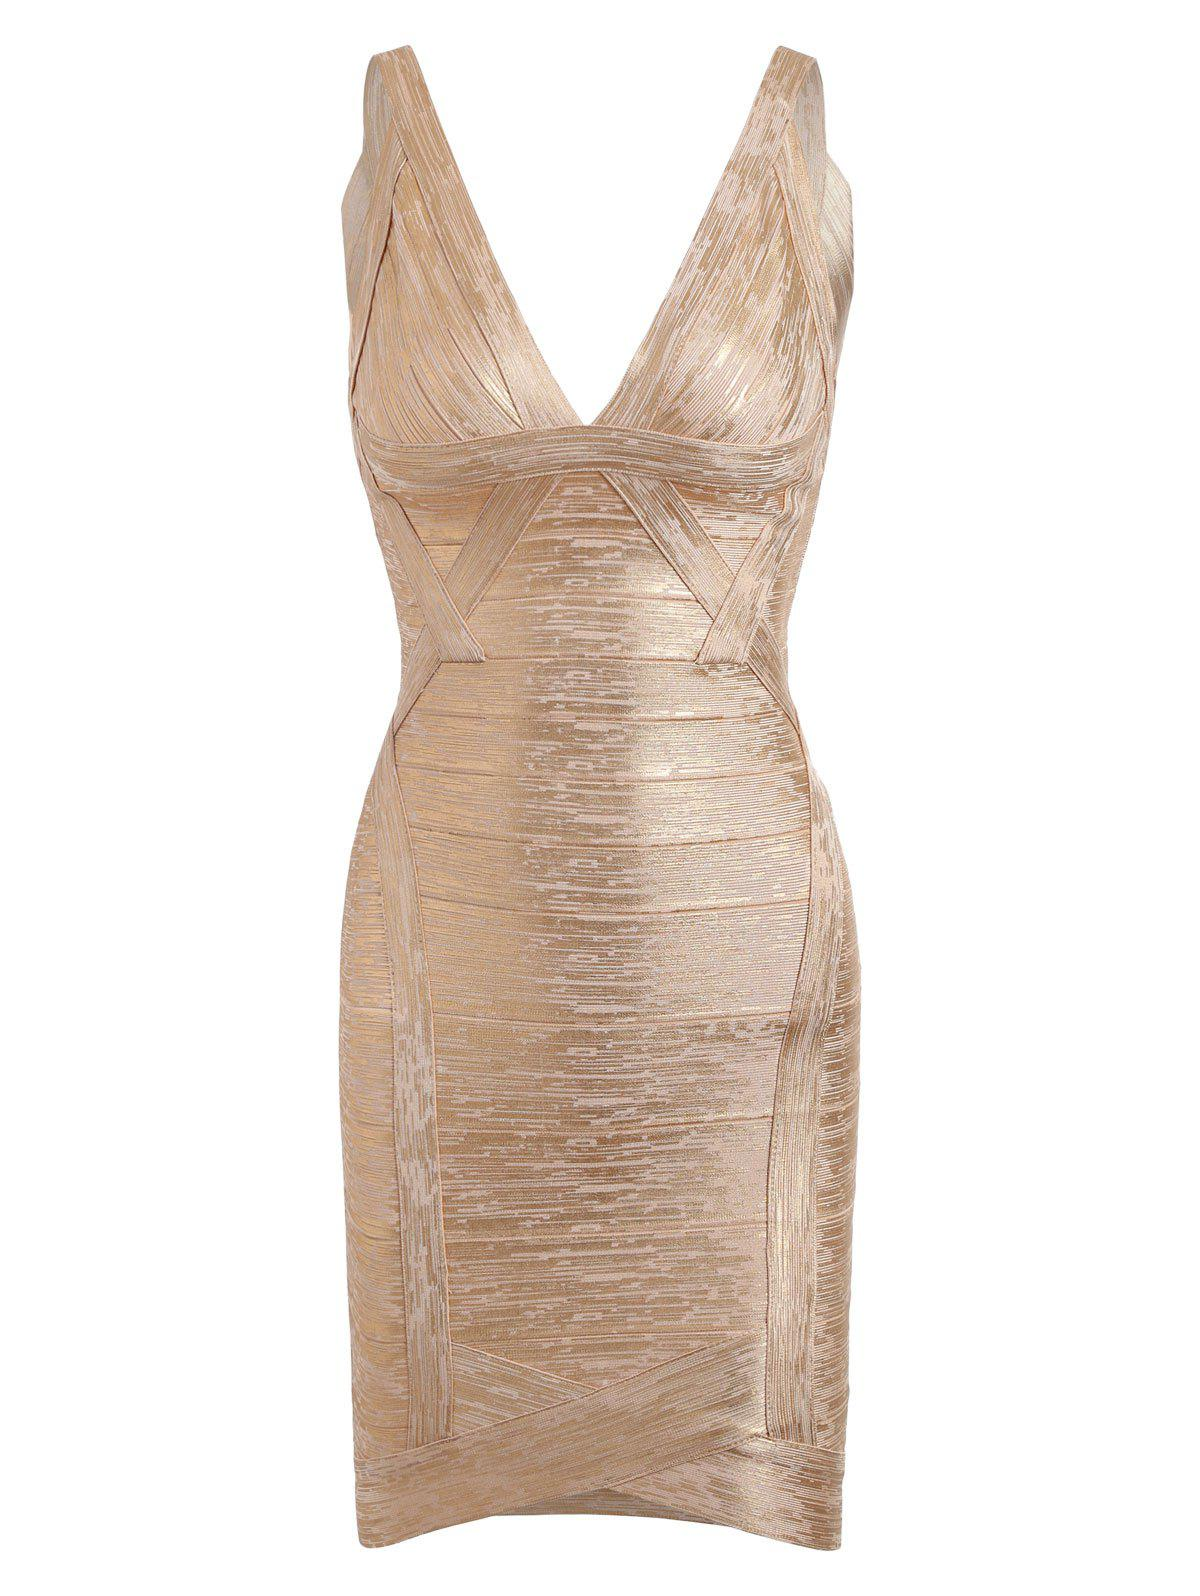 V Neck Bronzing Club Bandage Dress - Or S